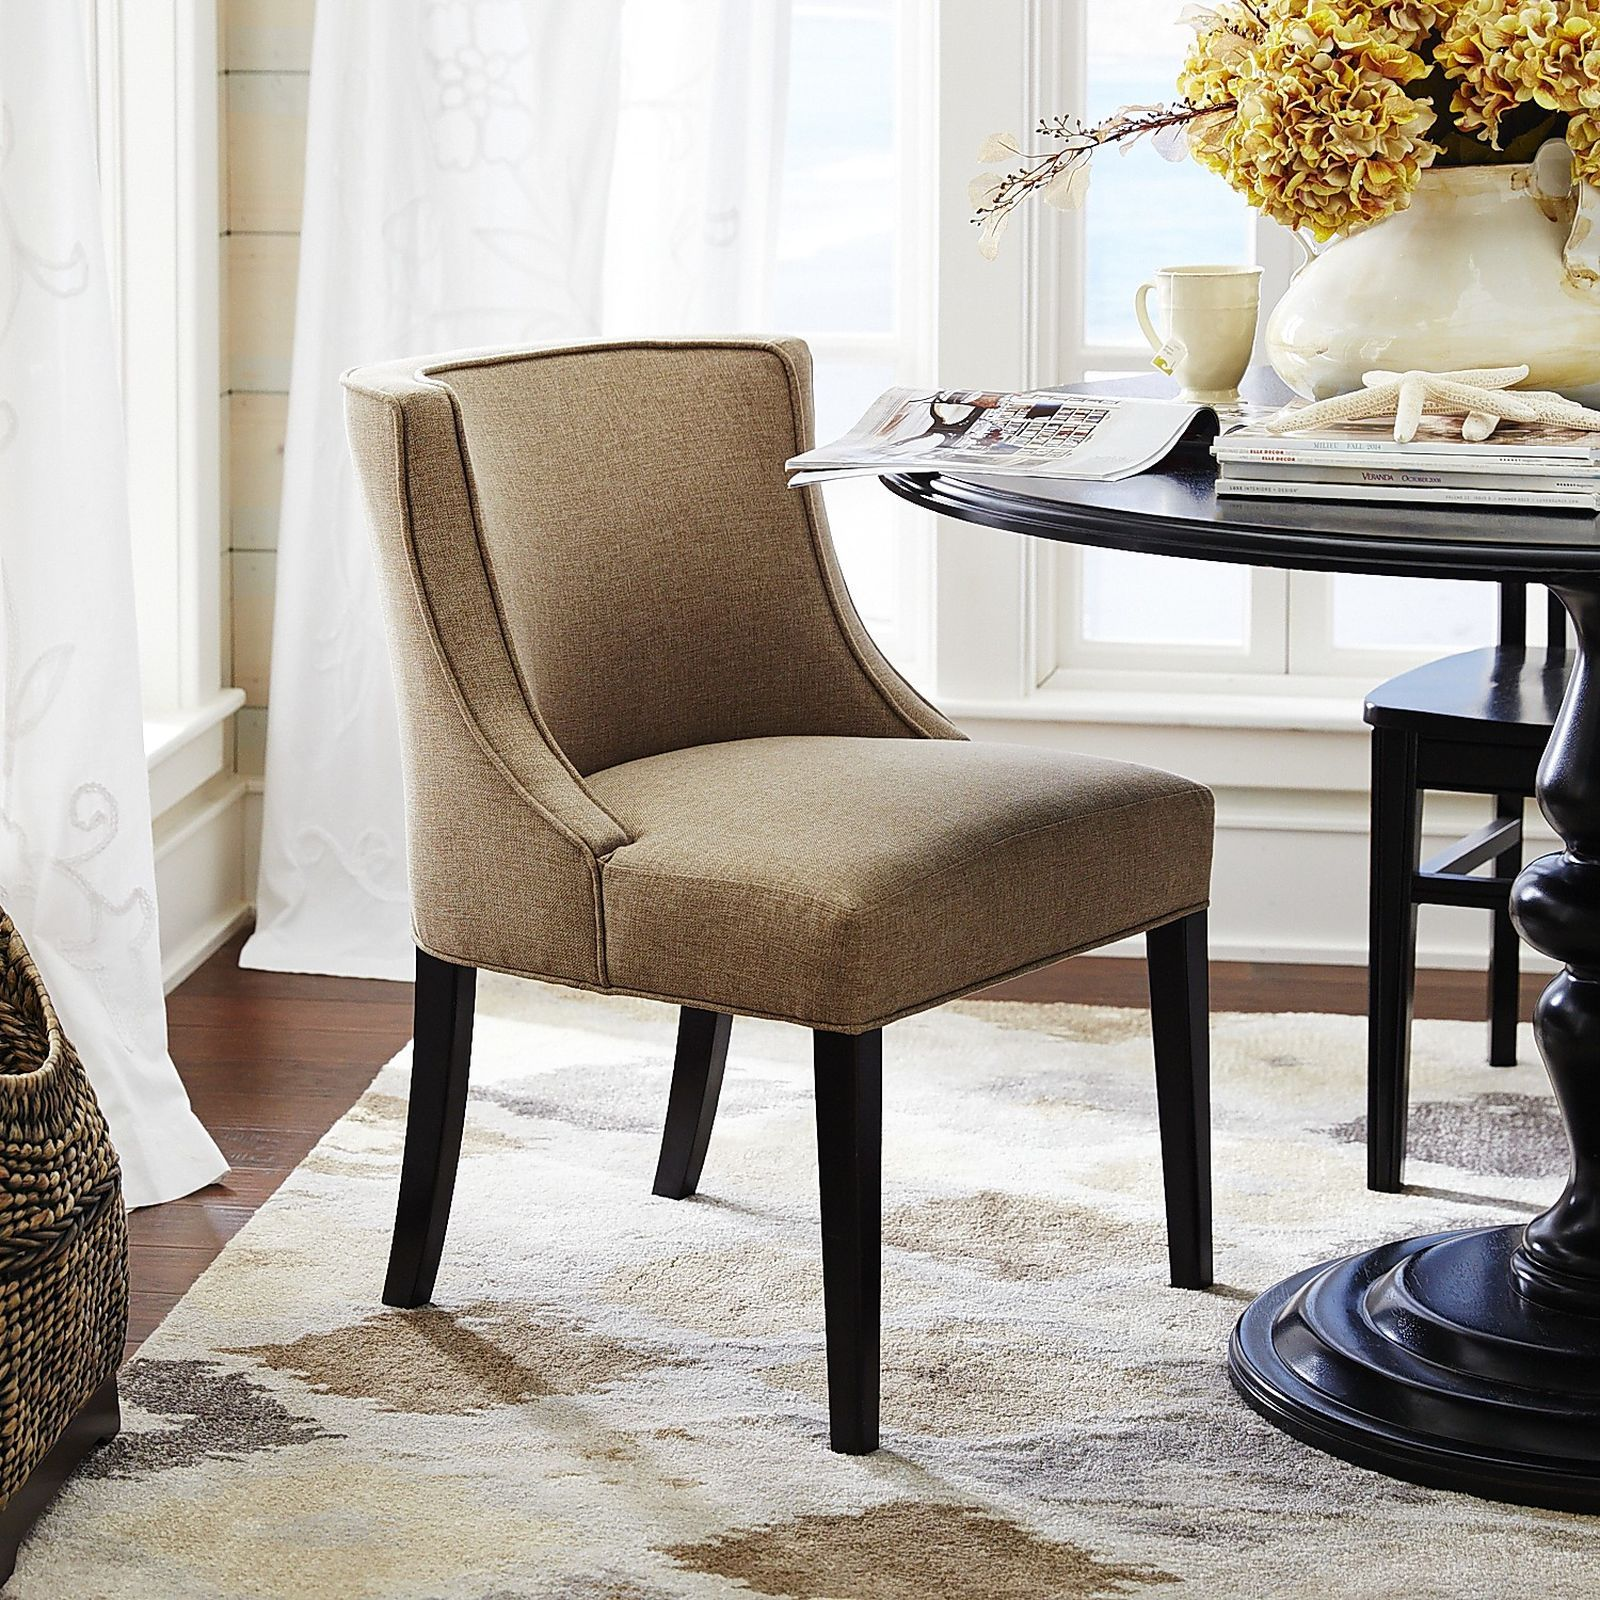 We Love The Tailored Look Of Our Hand Upholstered Dining Chair. Classic Yet  Contemporary